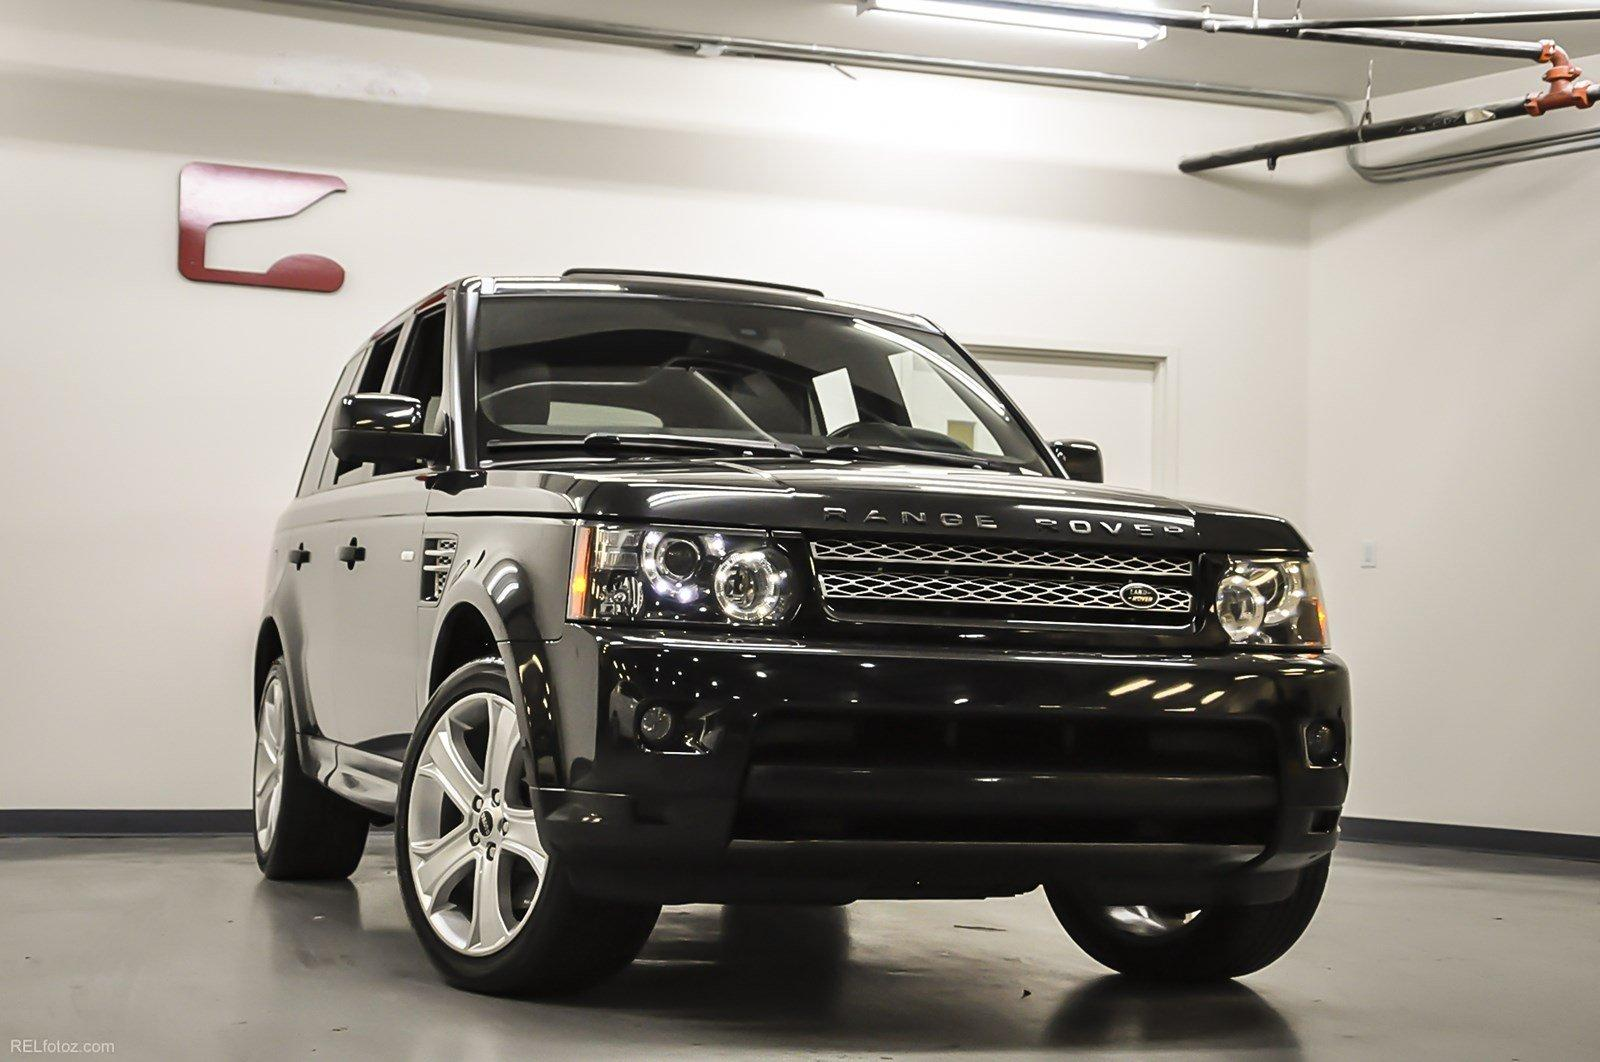 2012 Land Rover Range Rover Sport Hse Lux Stock 721816